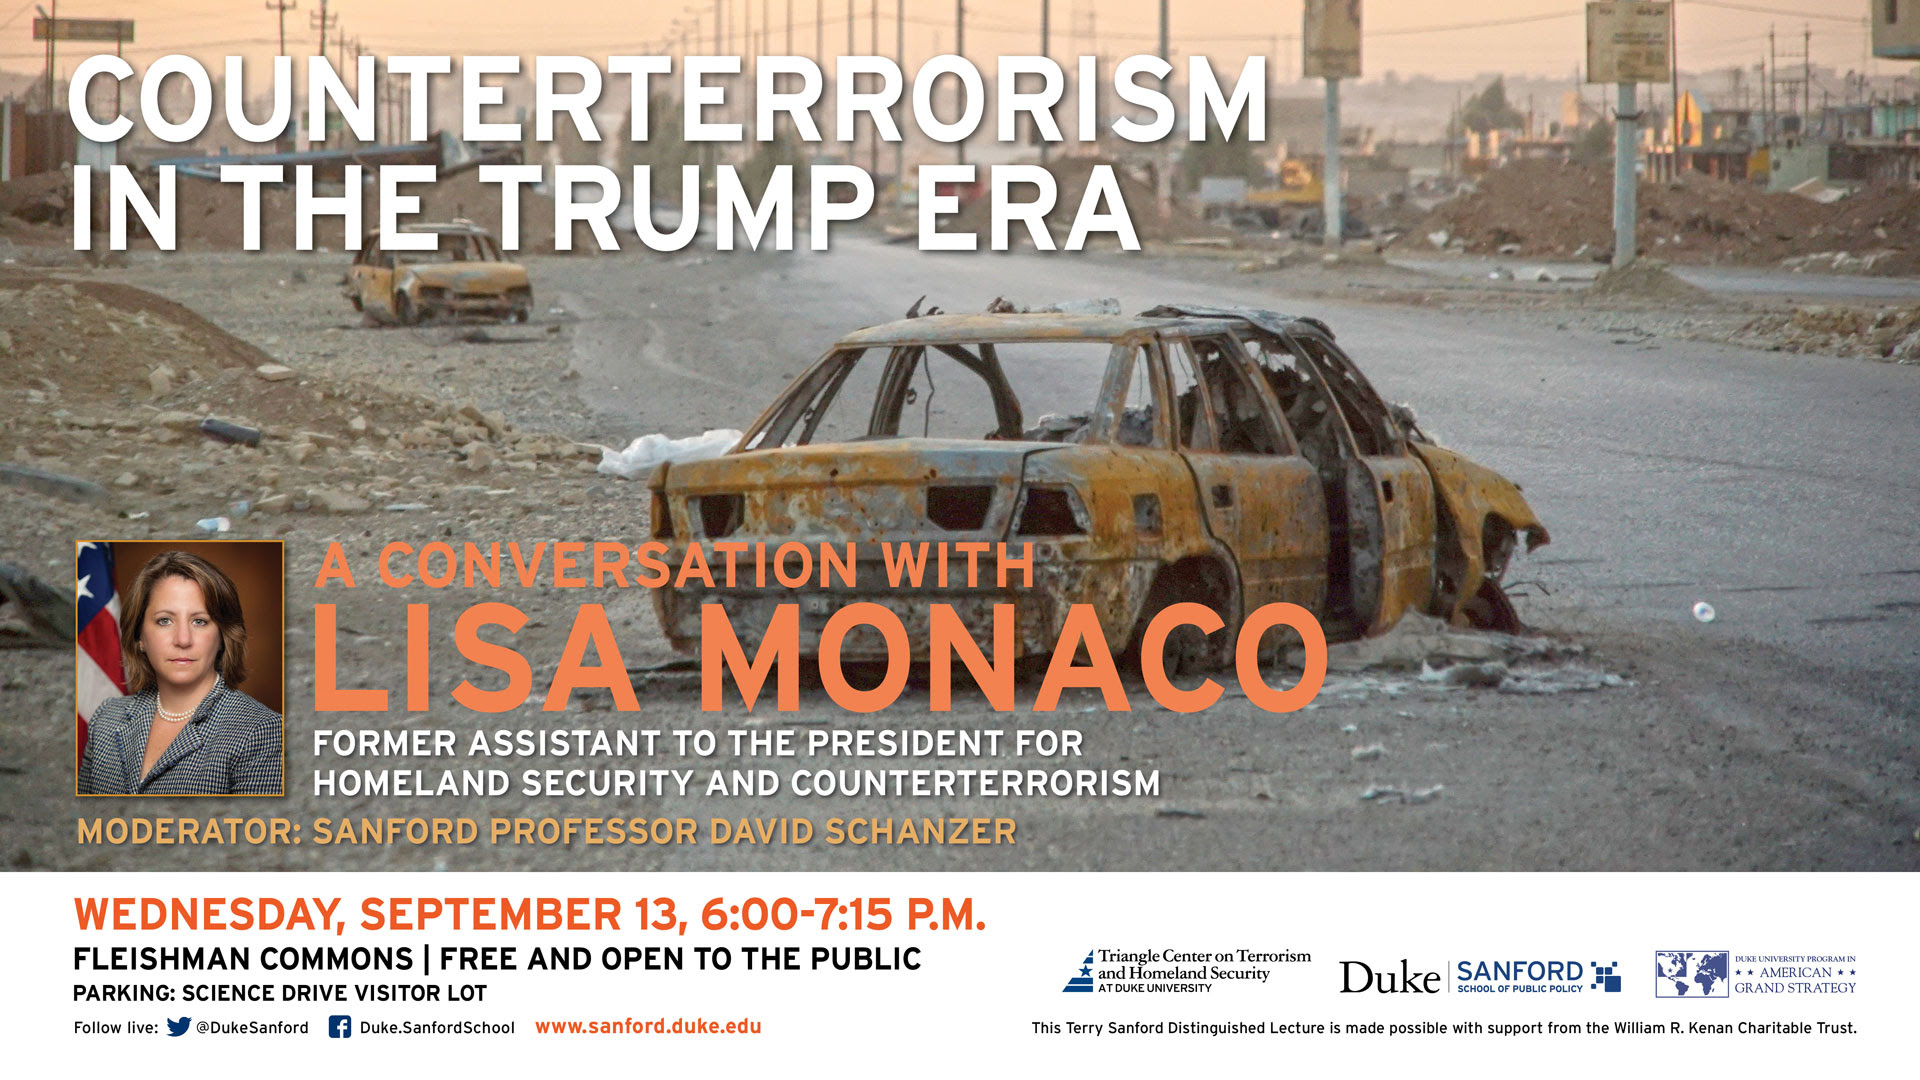 Counterterrorism in the Trump Era: A Conversation with Lisa Monaco @ Sanford School of Public Policy - Fleishman Commons | Durham | North Carolina | United States